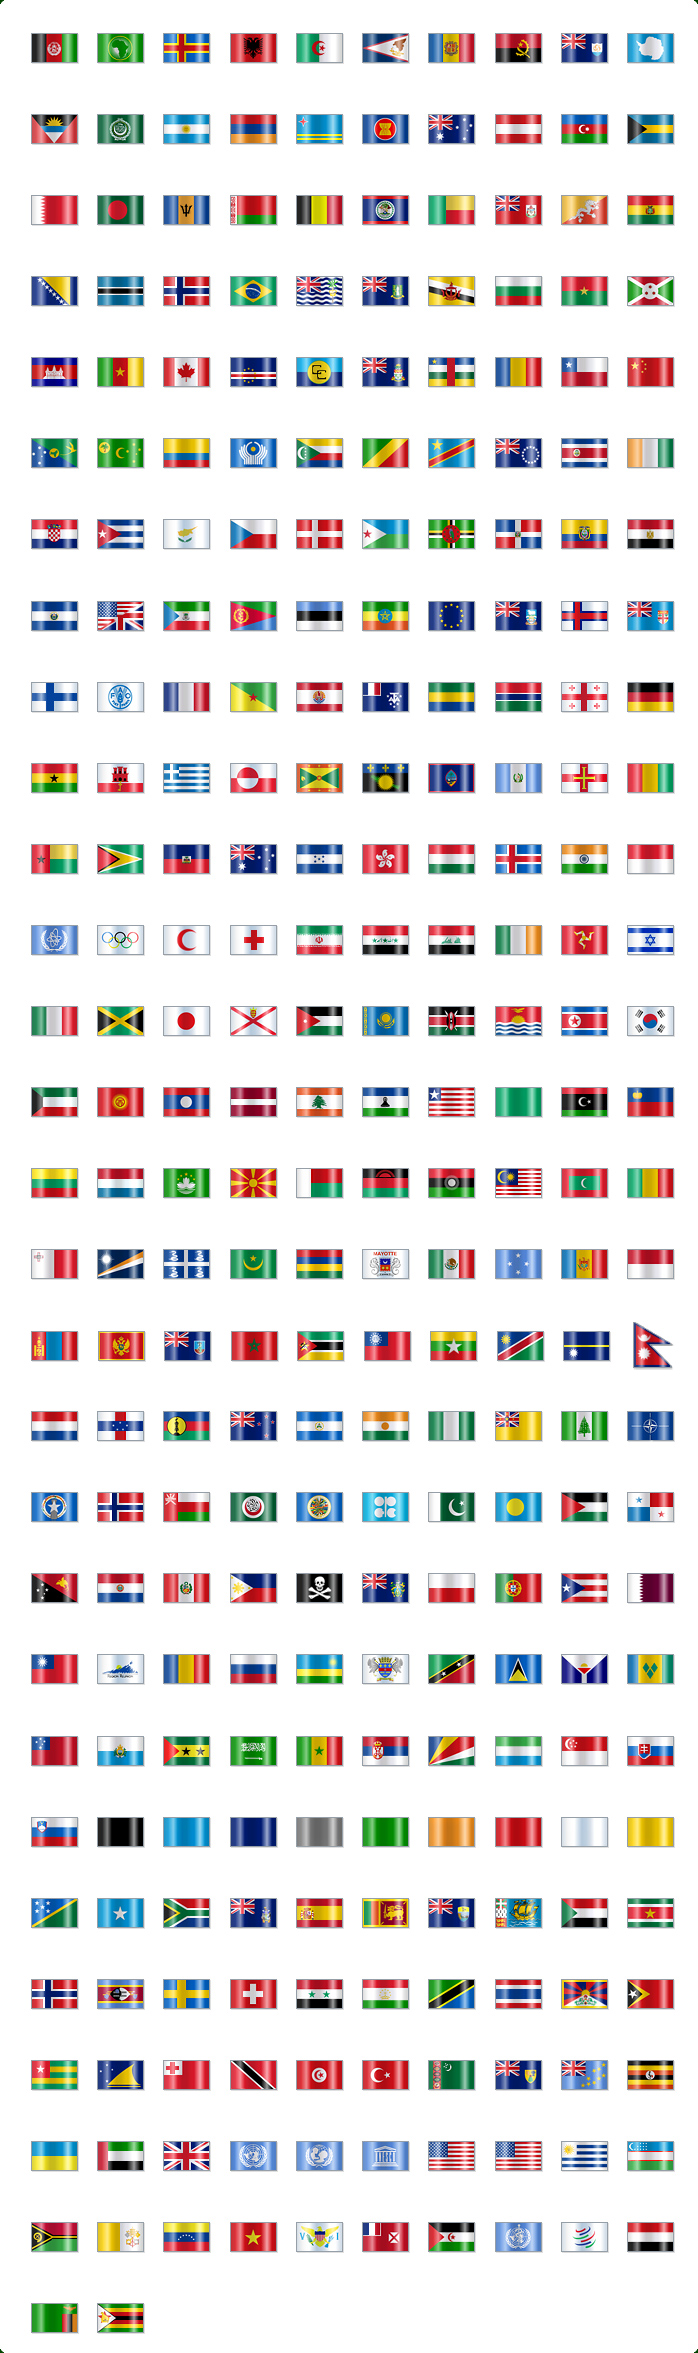 Exprimere Flags and Languages